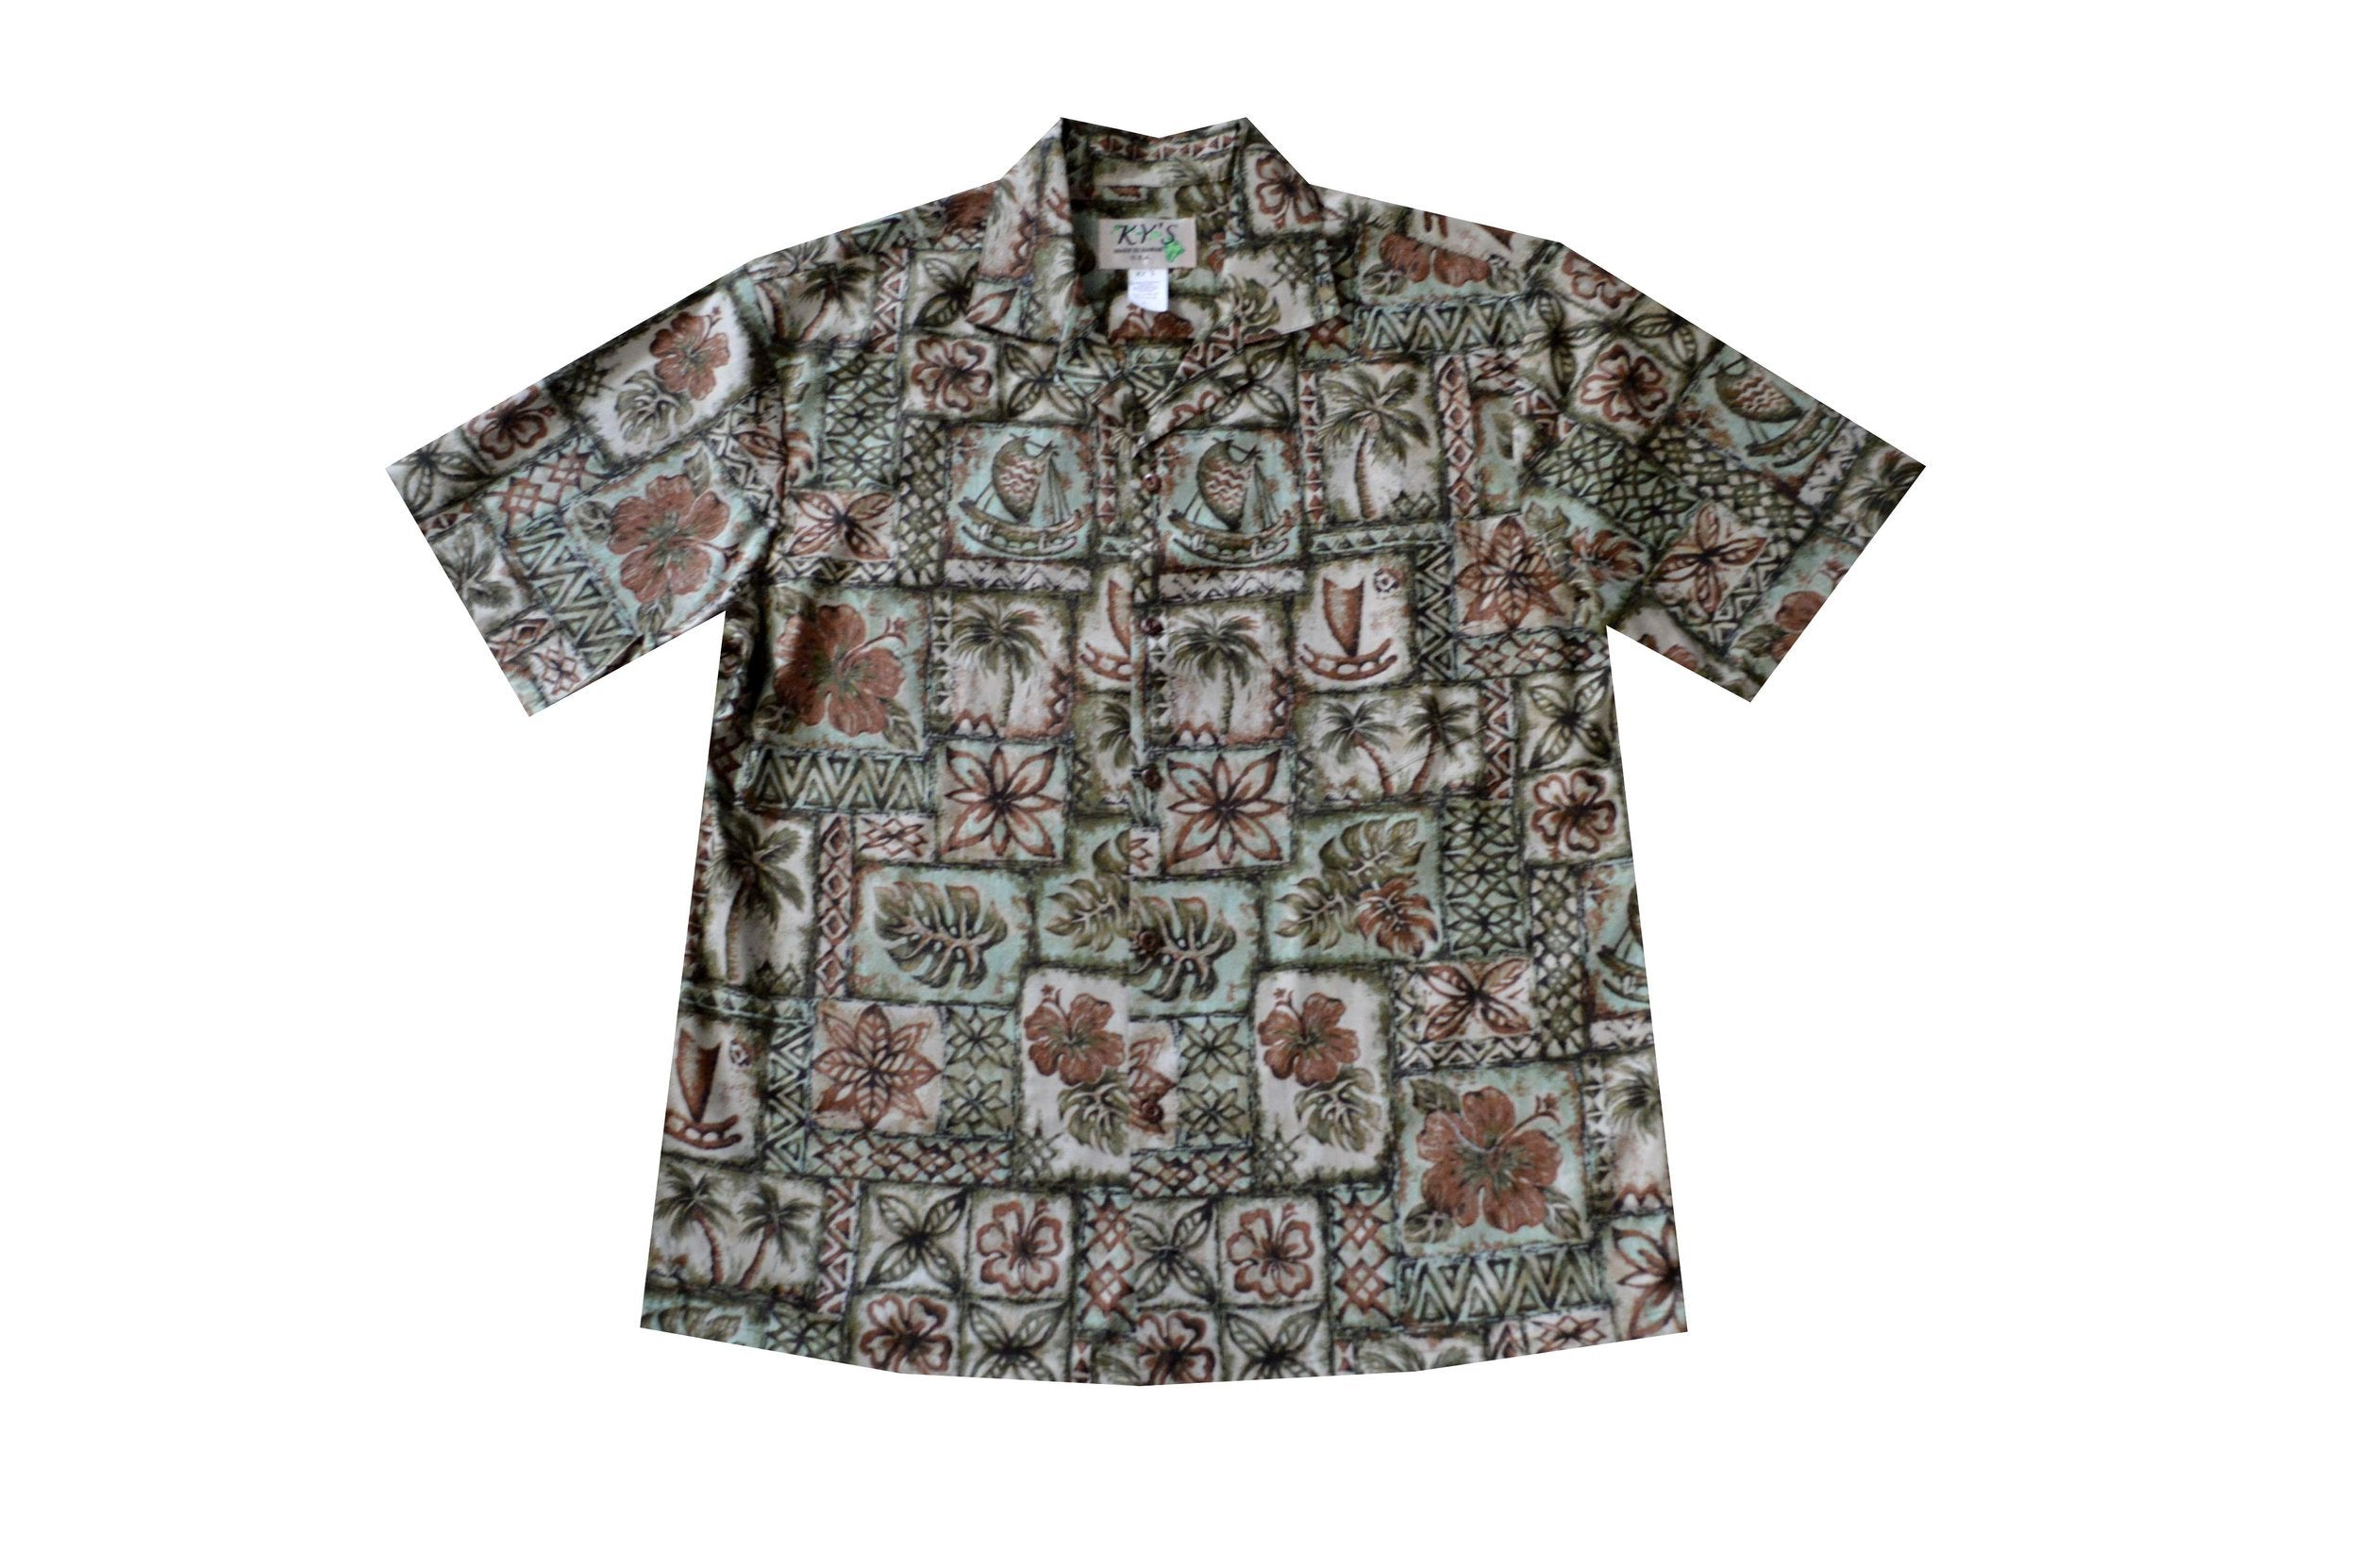 KY's Mens Green Button Down Hawaiian Shirt with Petroglyph Flowers - Leilanis Attic